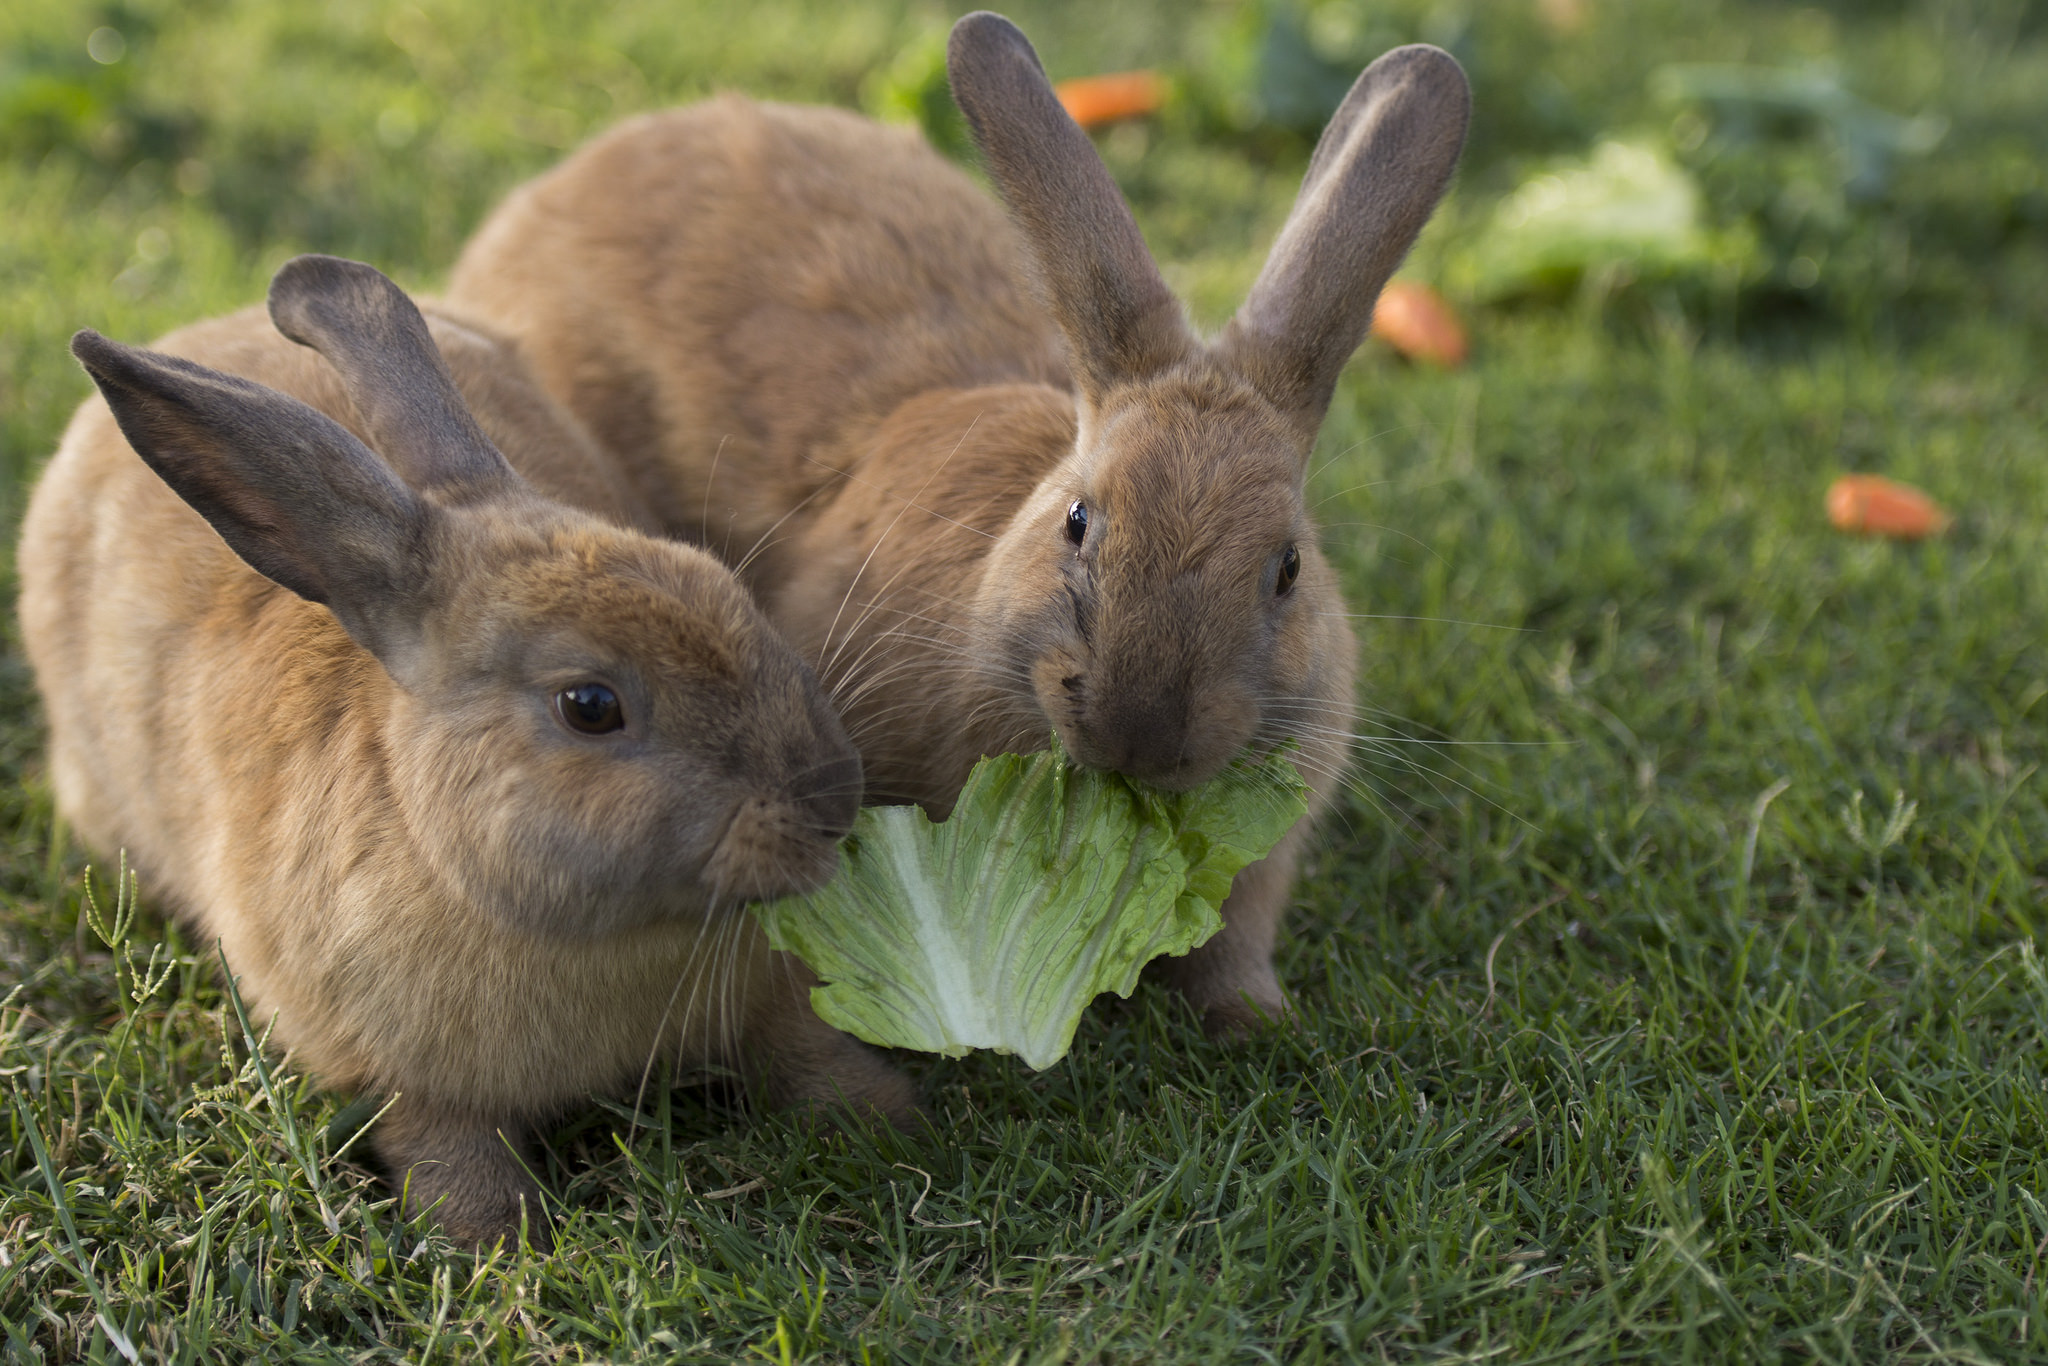 Rabbits share a piece of romaine lettuce fed to them by volunteer Stacey Taylor at Floyd Lamb Park at Tule Springs in Las Vegas,Sunday, July 31, 2016. The park is one of several locations in the valley where domesticated rabbits are illegally dumped and lack the know-how to survive in the wild. Jason Ogulnik/Las Vegas Review-Journal